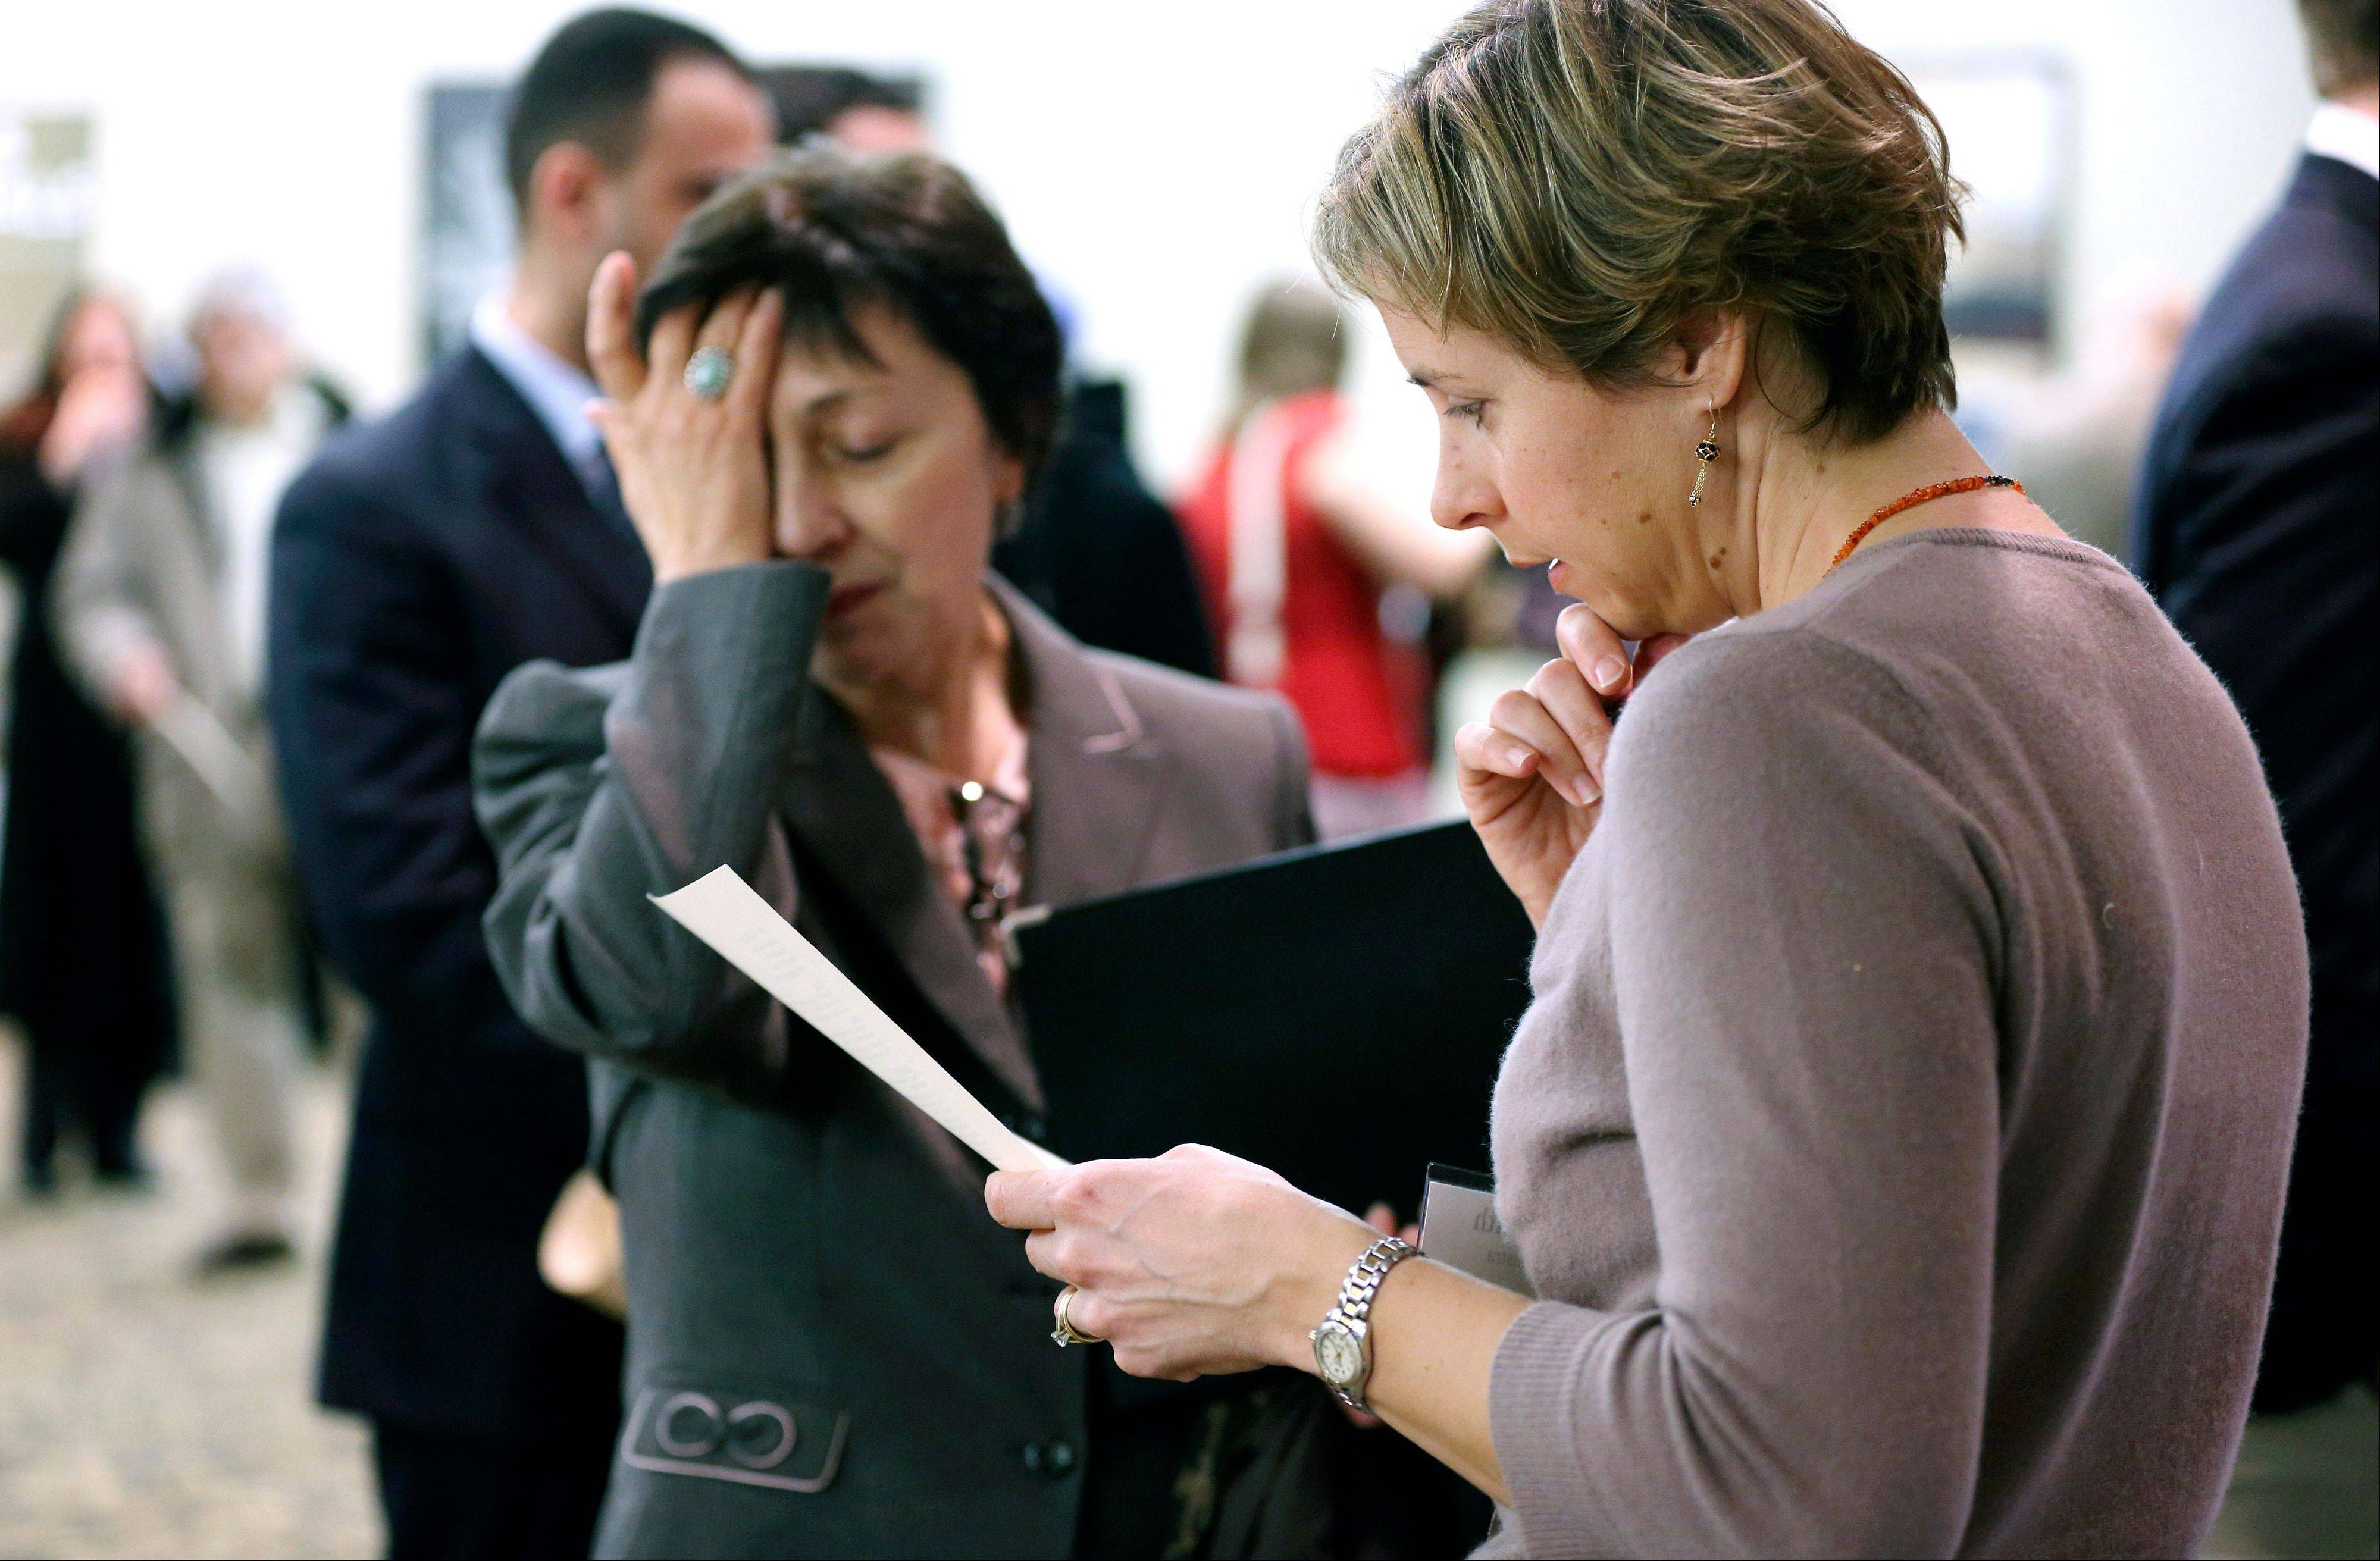 Ann Oganesian, left, of Newton, Mass., pauses as she speaks with a State Dept. employee about job opportunities with the federal government during a job fair in Boston. The Labor Department is scheduled to release the jobs report Friday .